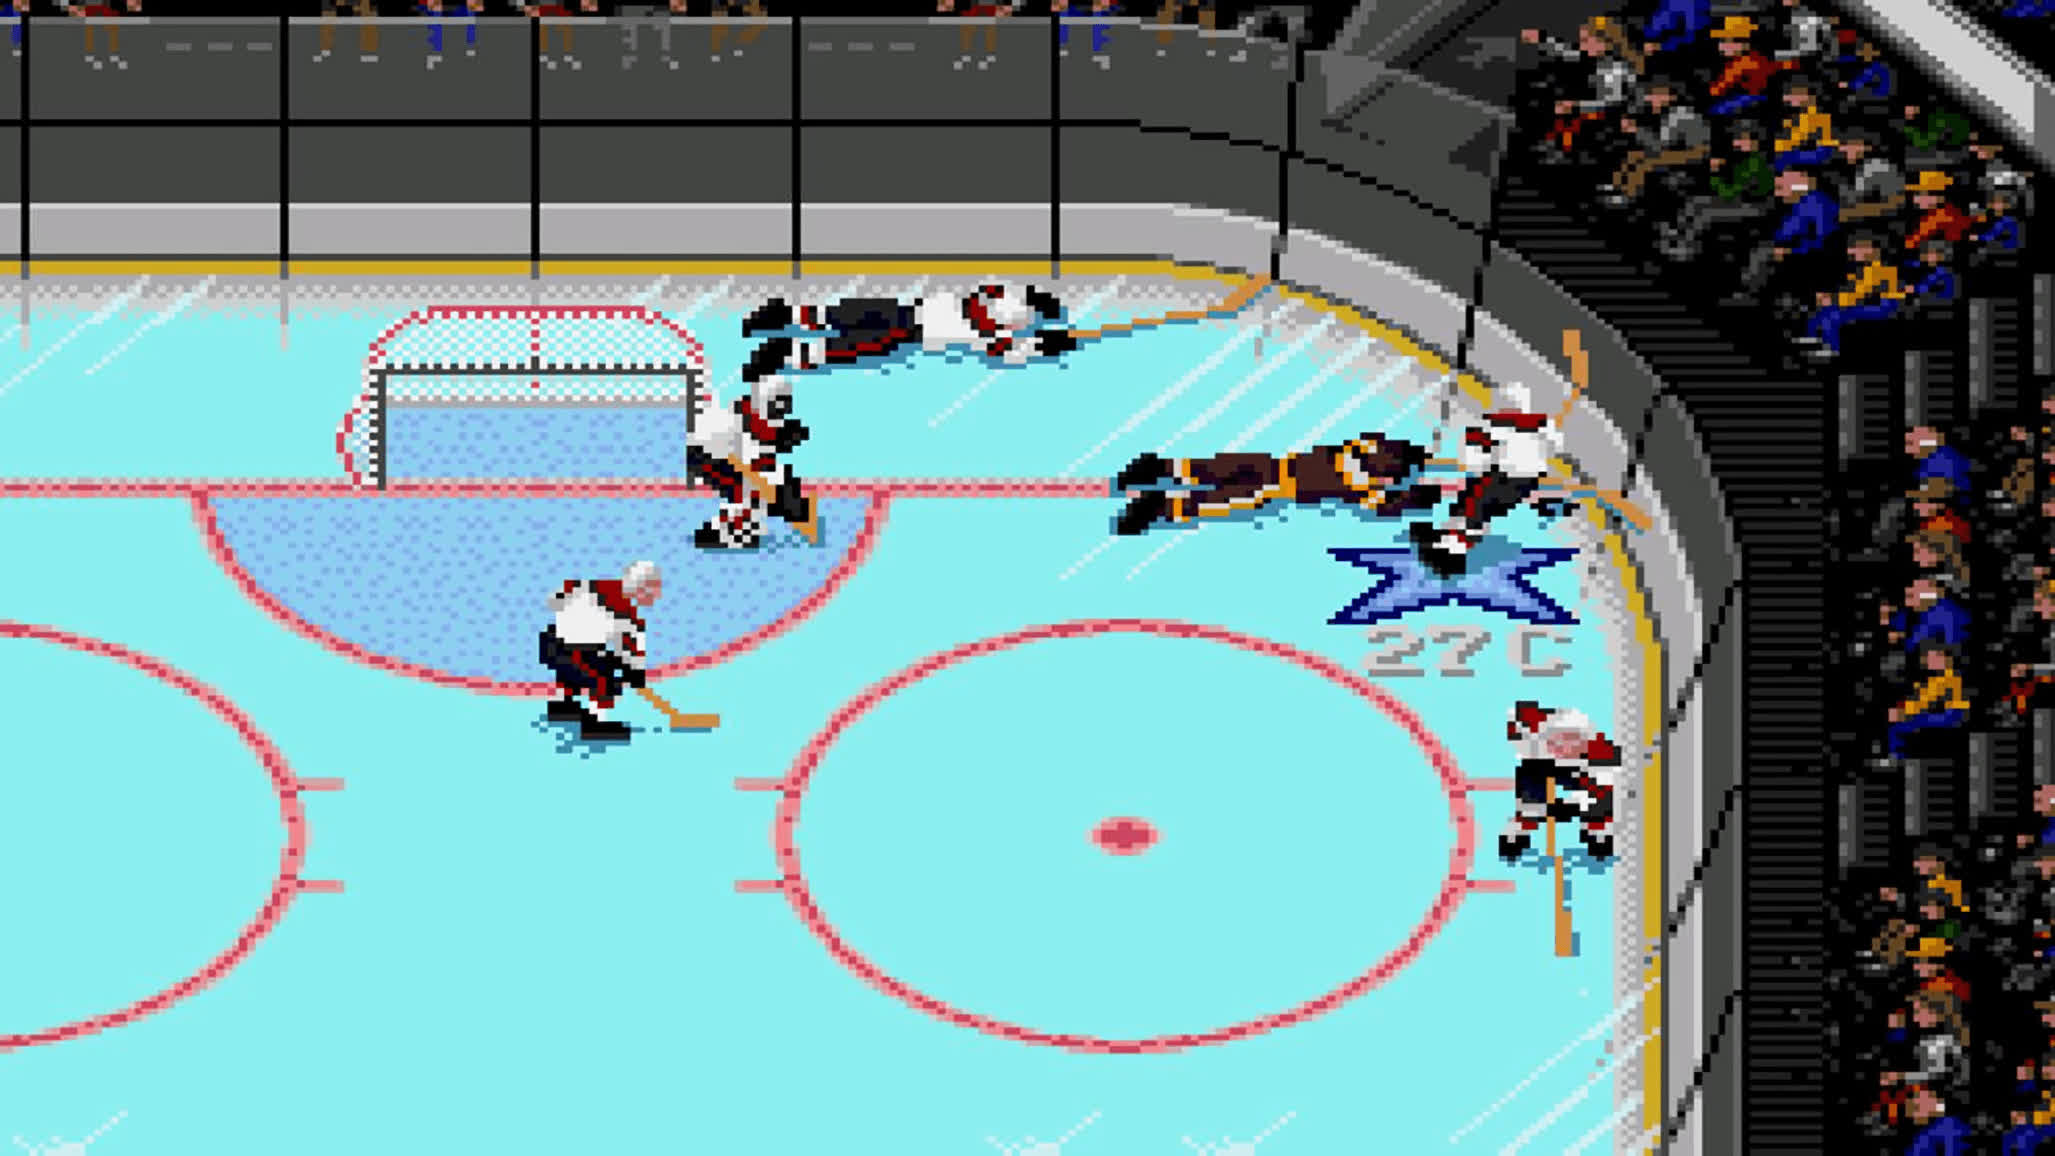 One of the greatest hockey games is getting updated with today's teams and rosters